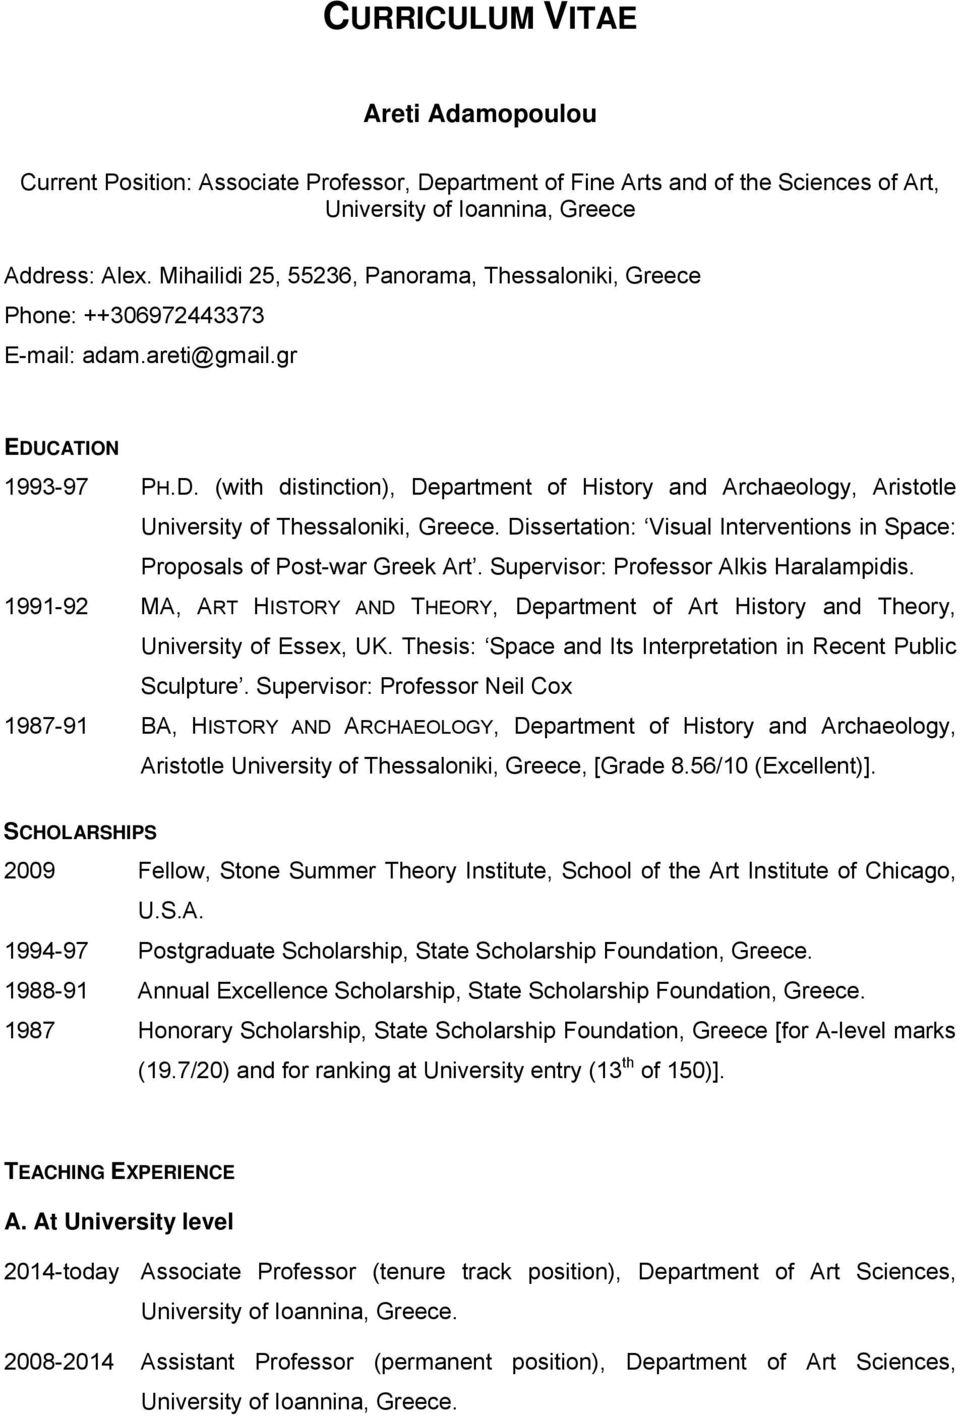 CATION 1993-97 PH.D. (with distinction), Department of History and Archaeology, Aristotle University of Thessaloniki, Greece.